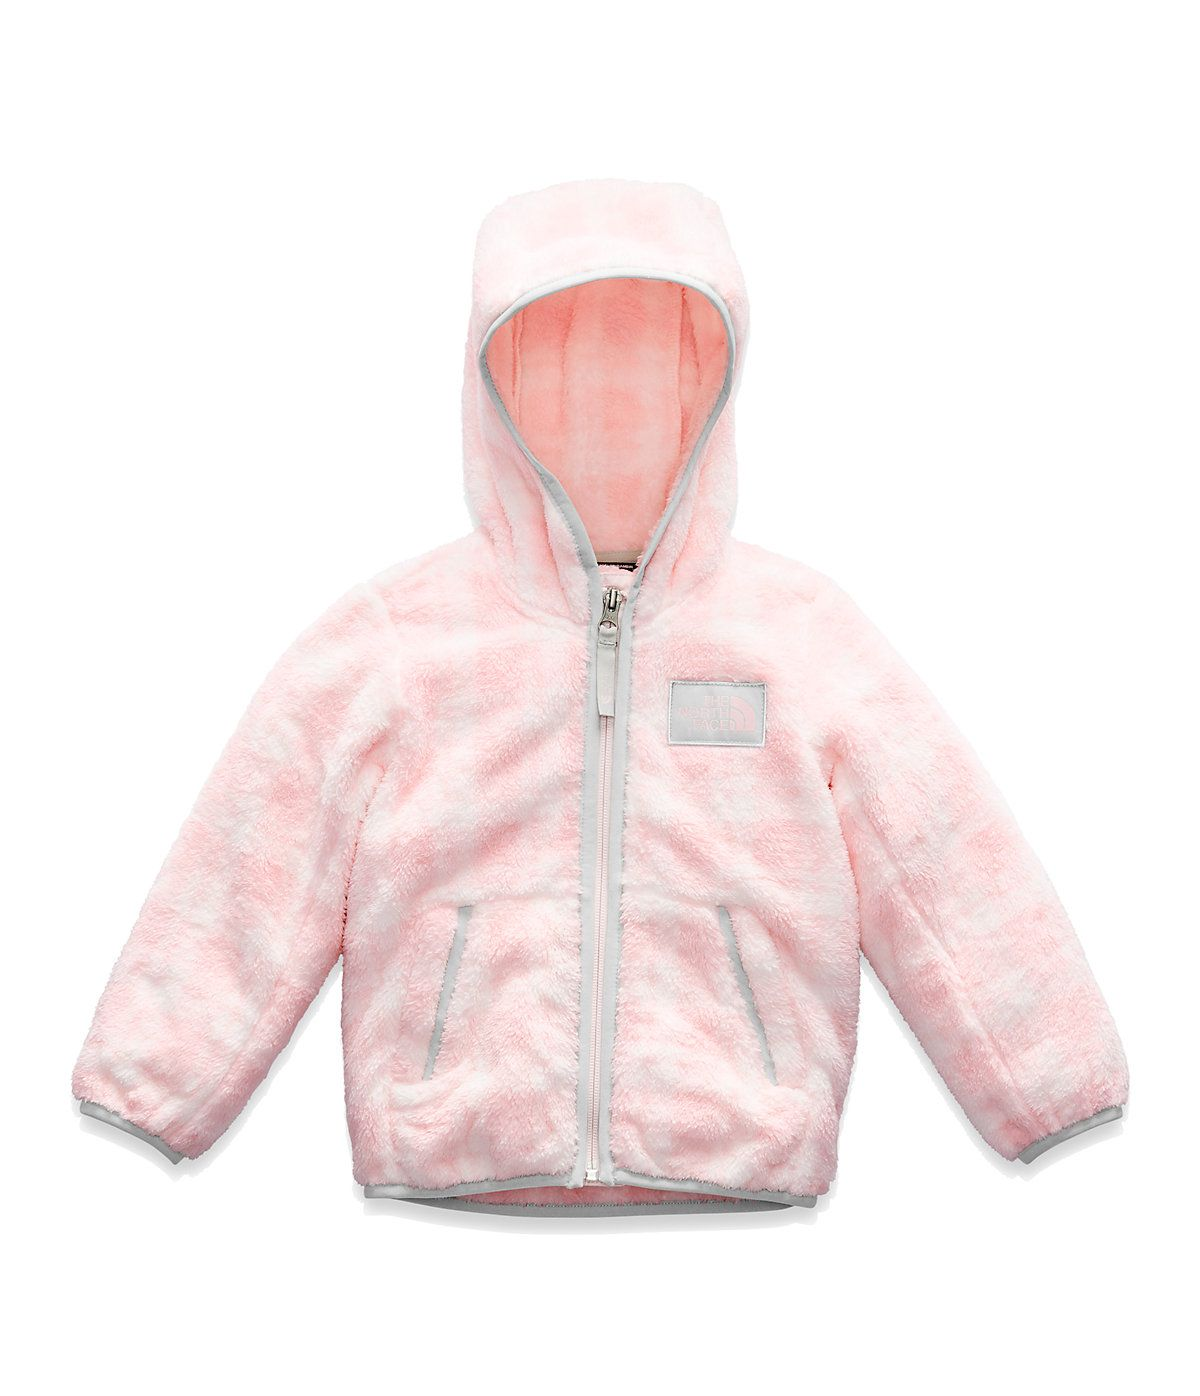 New The North Face Kids Girls Campshire Sherpa Fleece Jacket Full Zip Coat